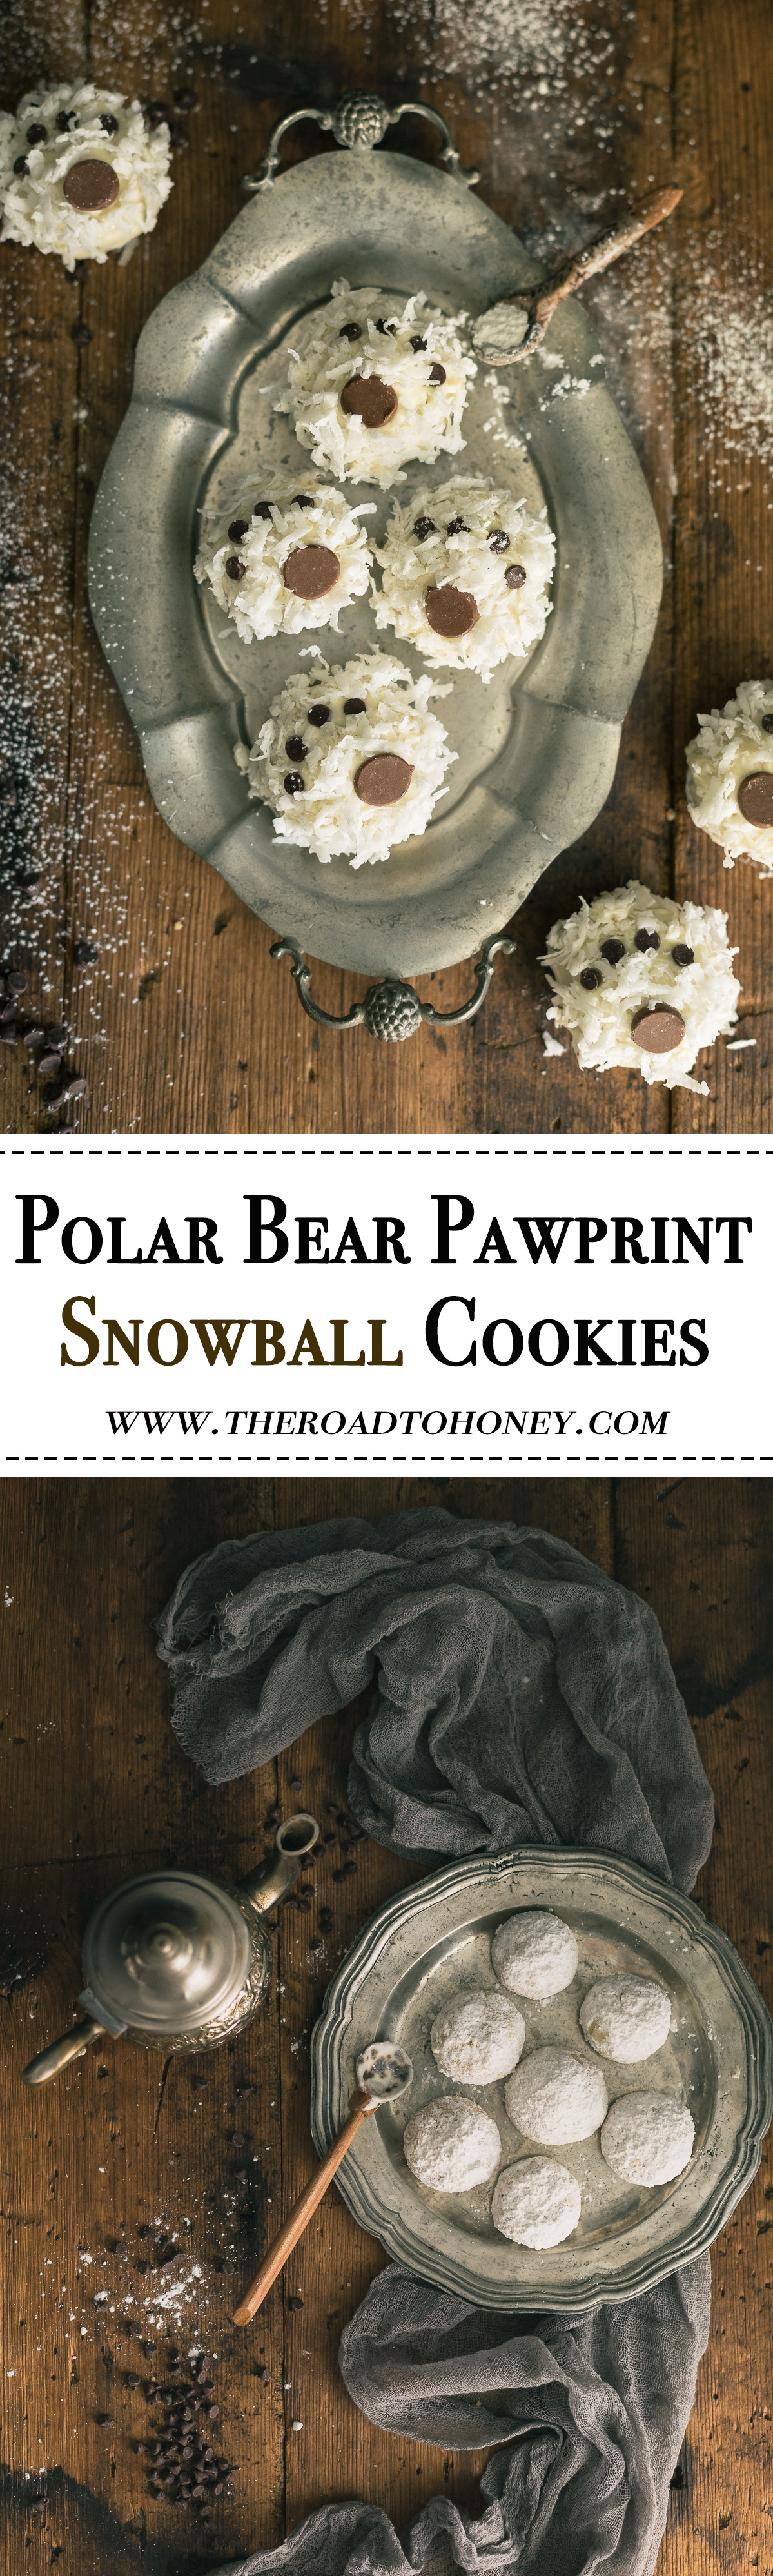 Polar Bear Paw Snowball Cookies - these light melt-in-your mouth nutty, buttery cookies are dipped in a decadent white chocolate & coated with a sprinkling of coconut & chocolate chips for a fun, playful look. They're not only perfect for the holidays but equally fun for snow days Christmas in July & birthday parties.